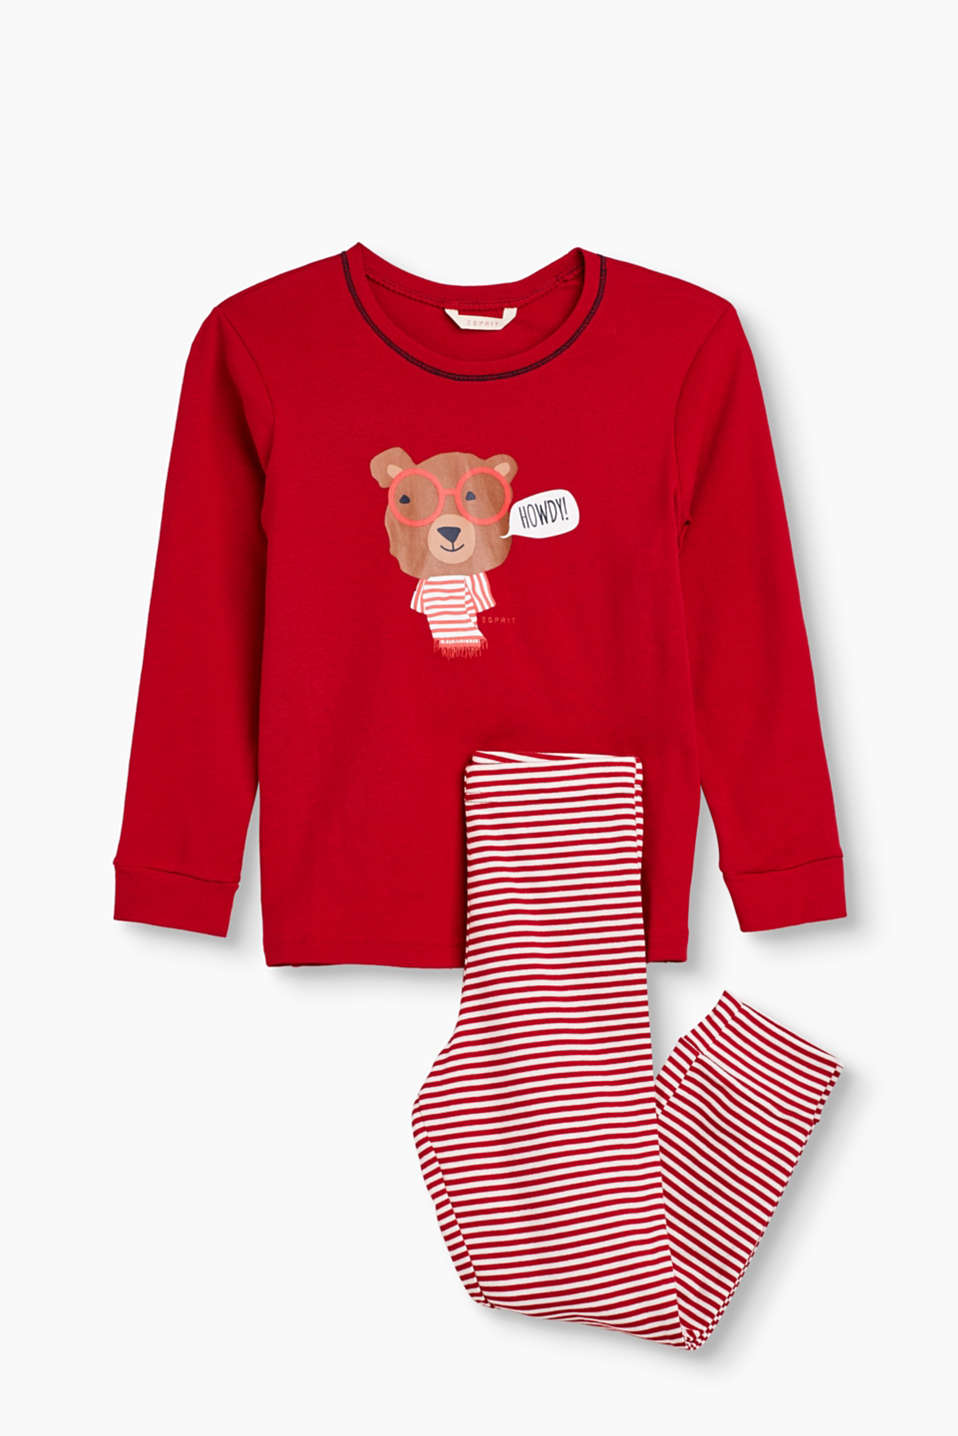 Pyjama set in soft cotton jersey with cheerful stripes and a bear print in a comic style